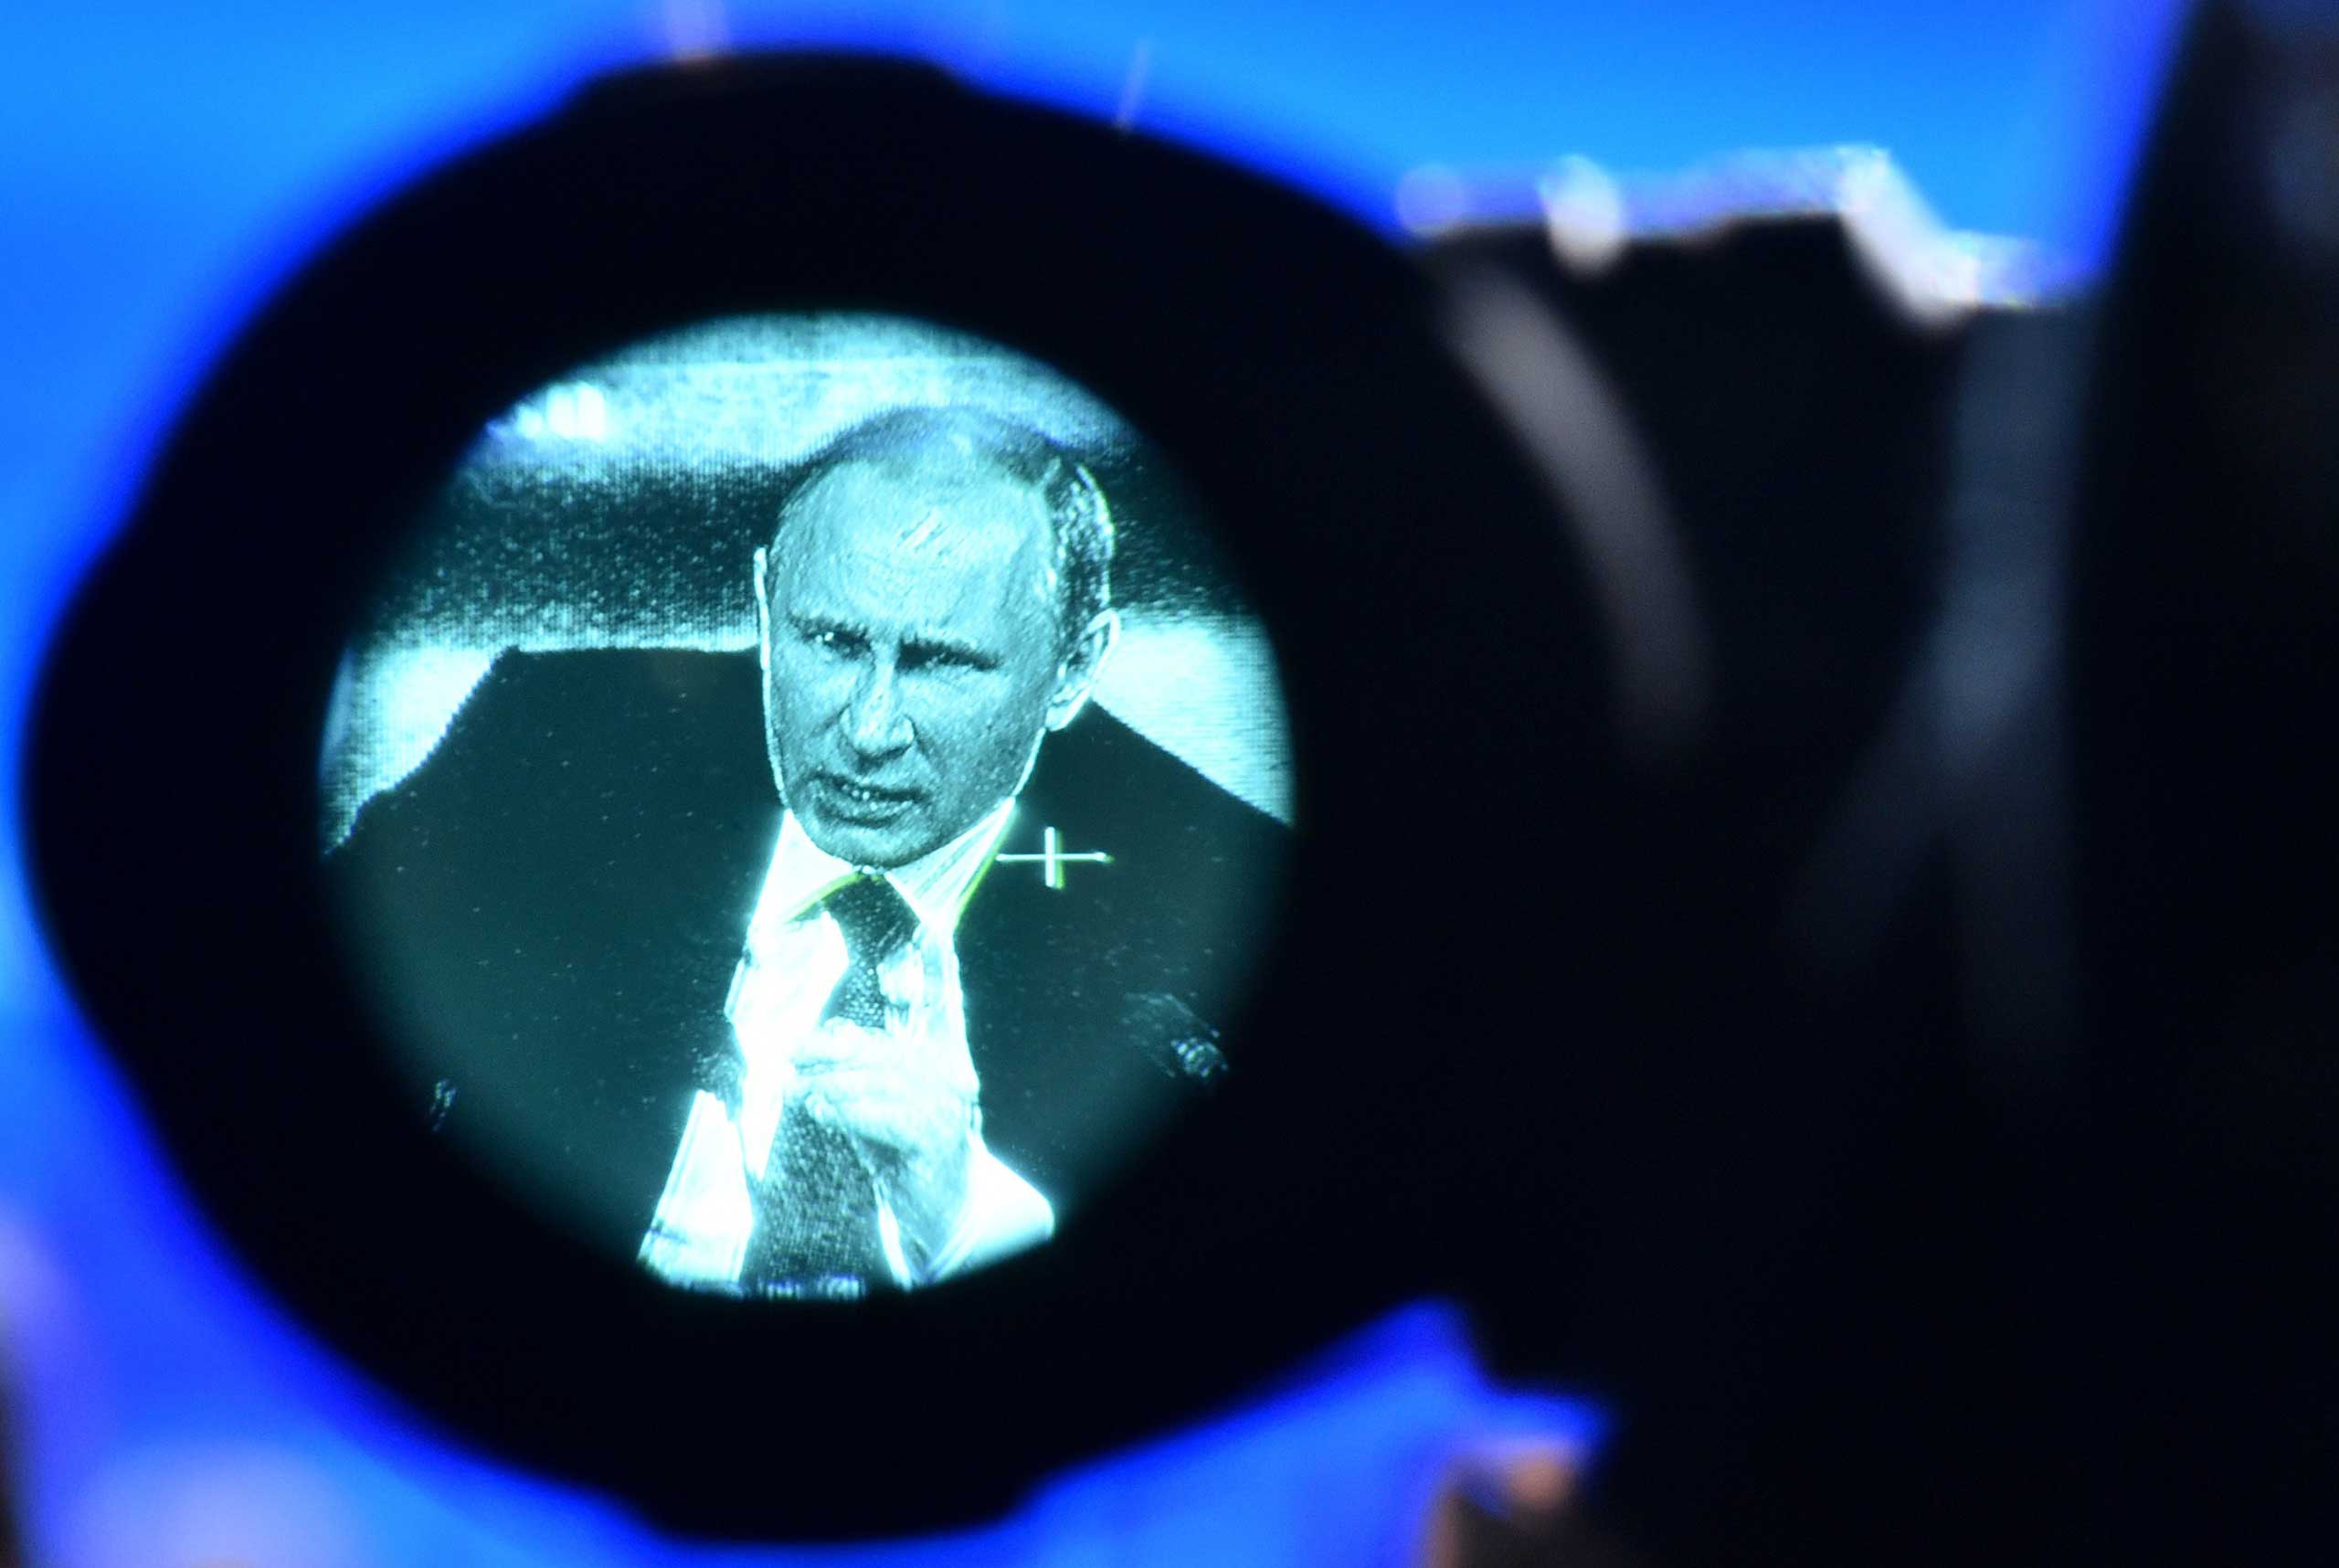 Dec.18, 2014. Russia's President Vladimir Putin is seen through a video camera's viewfinder, as he speaks during his annual press conference in Moscow.